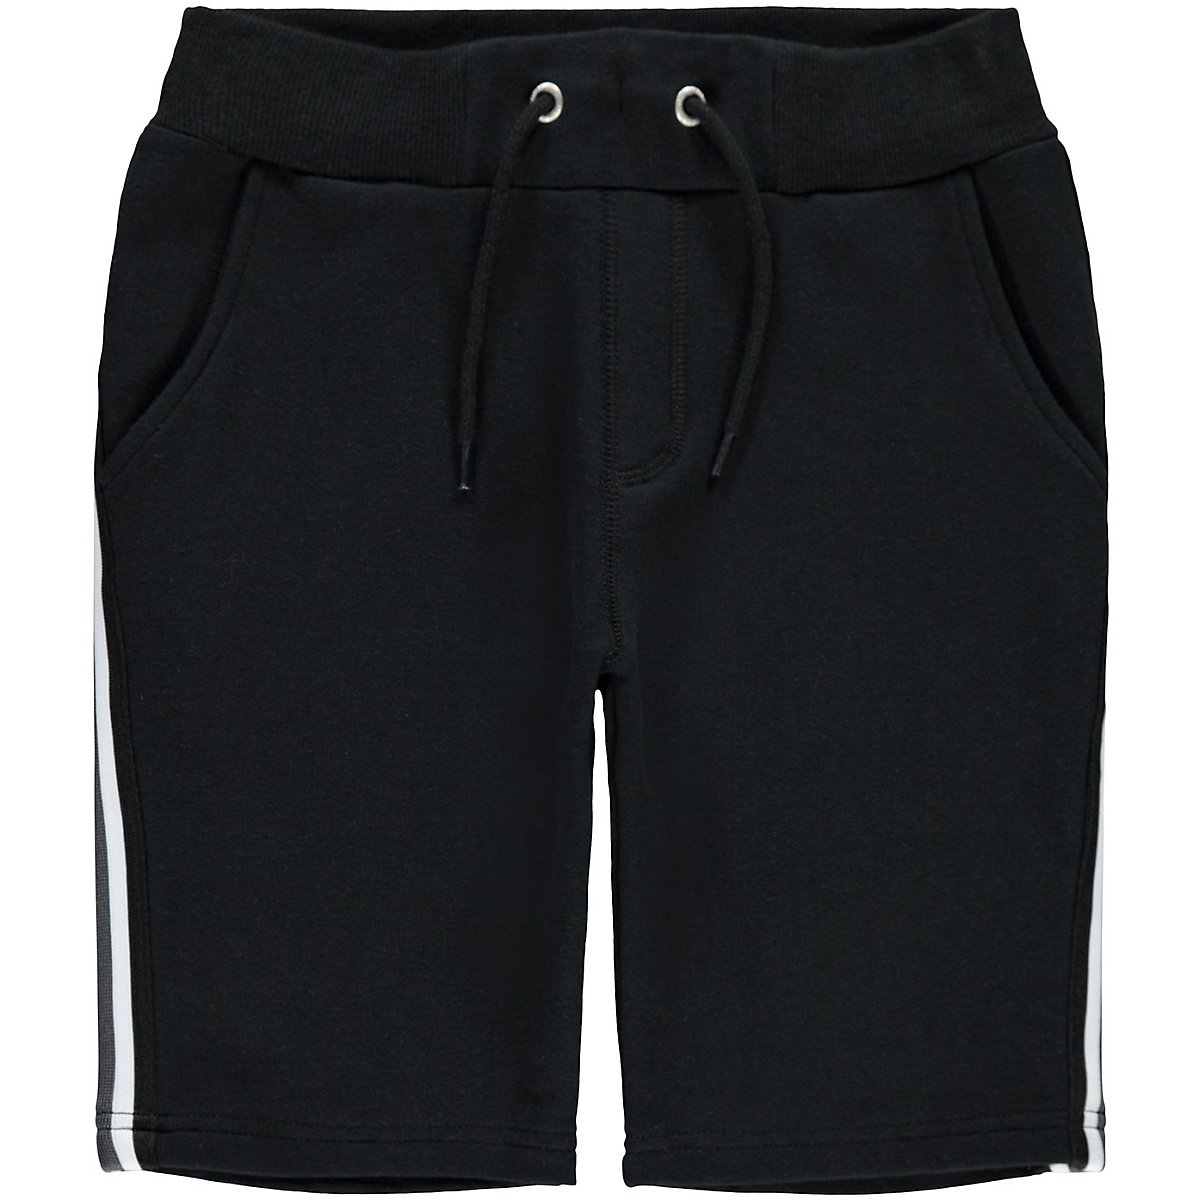 NAME IT Shorts 10624765 for boys and girls child sport for teenagers clothes Cotton Elastic Waist Boys name it shorts 10266153 for boys and girls child sport for teenagers clothes cotton elastic waist boys